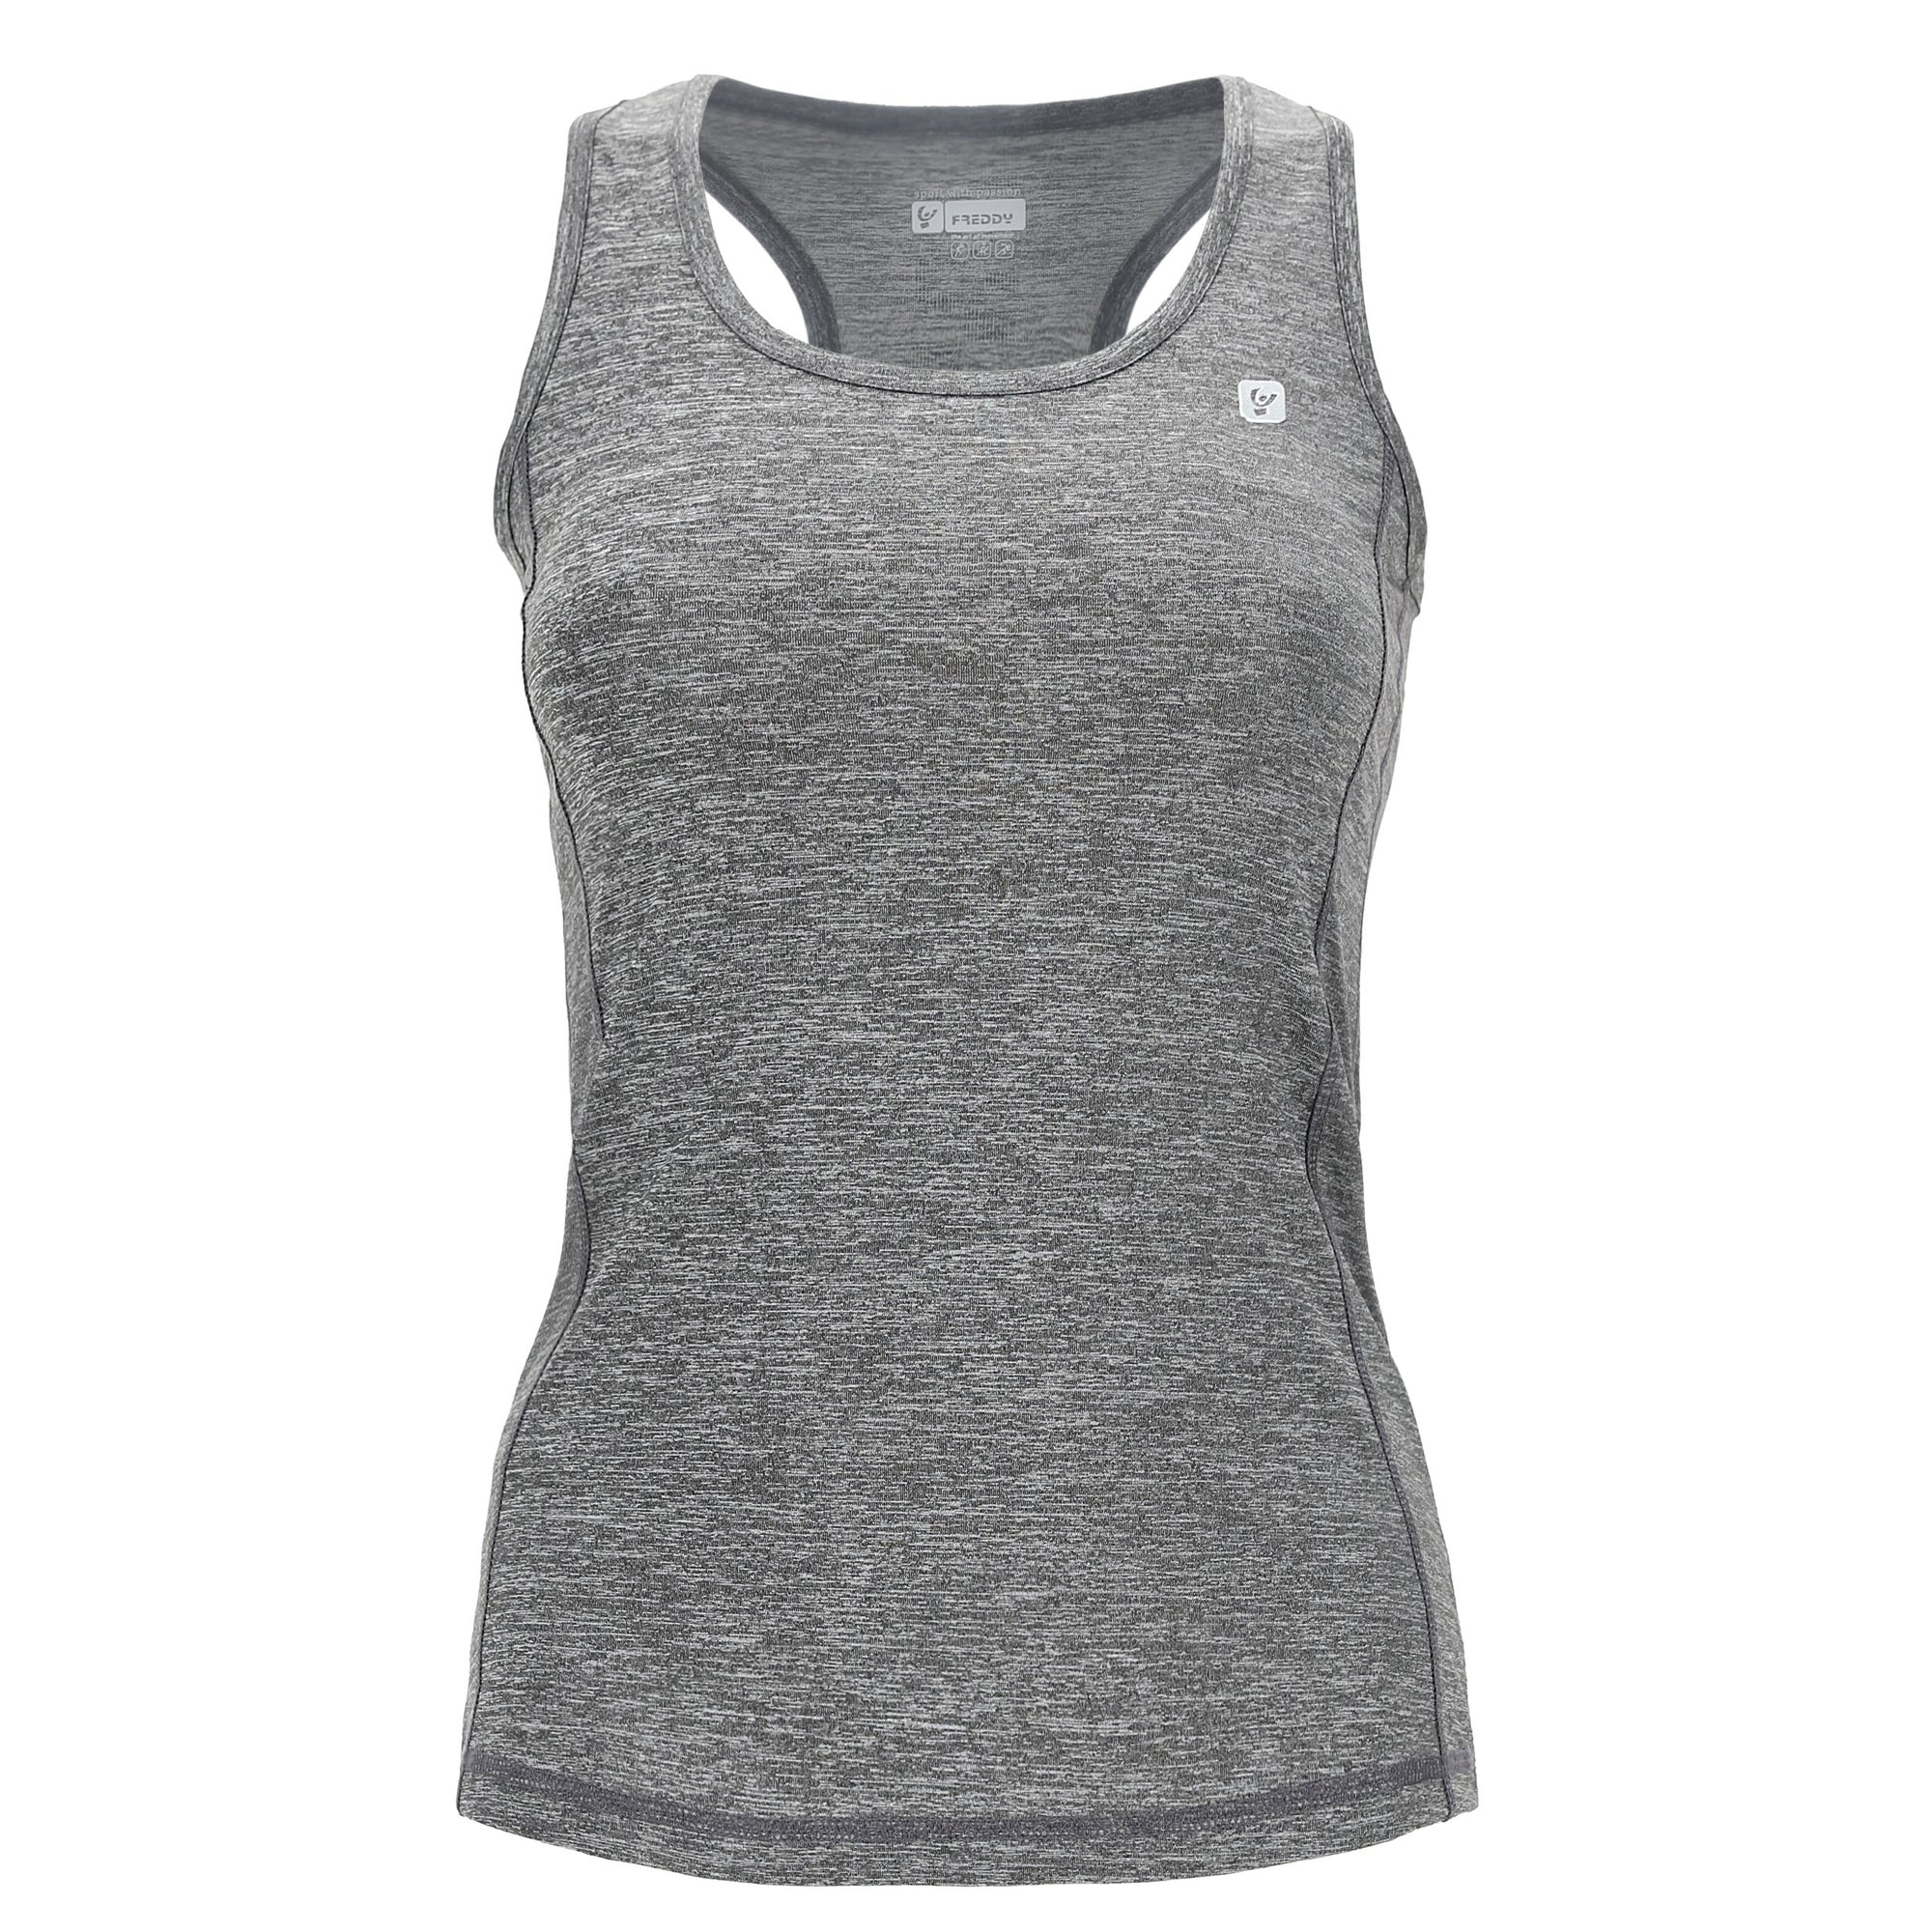 MELANGE GREY TANK TOP